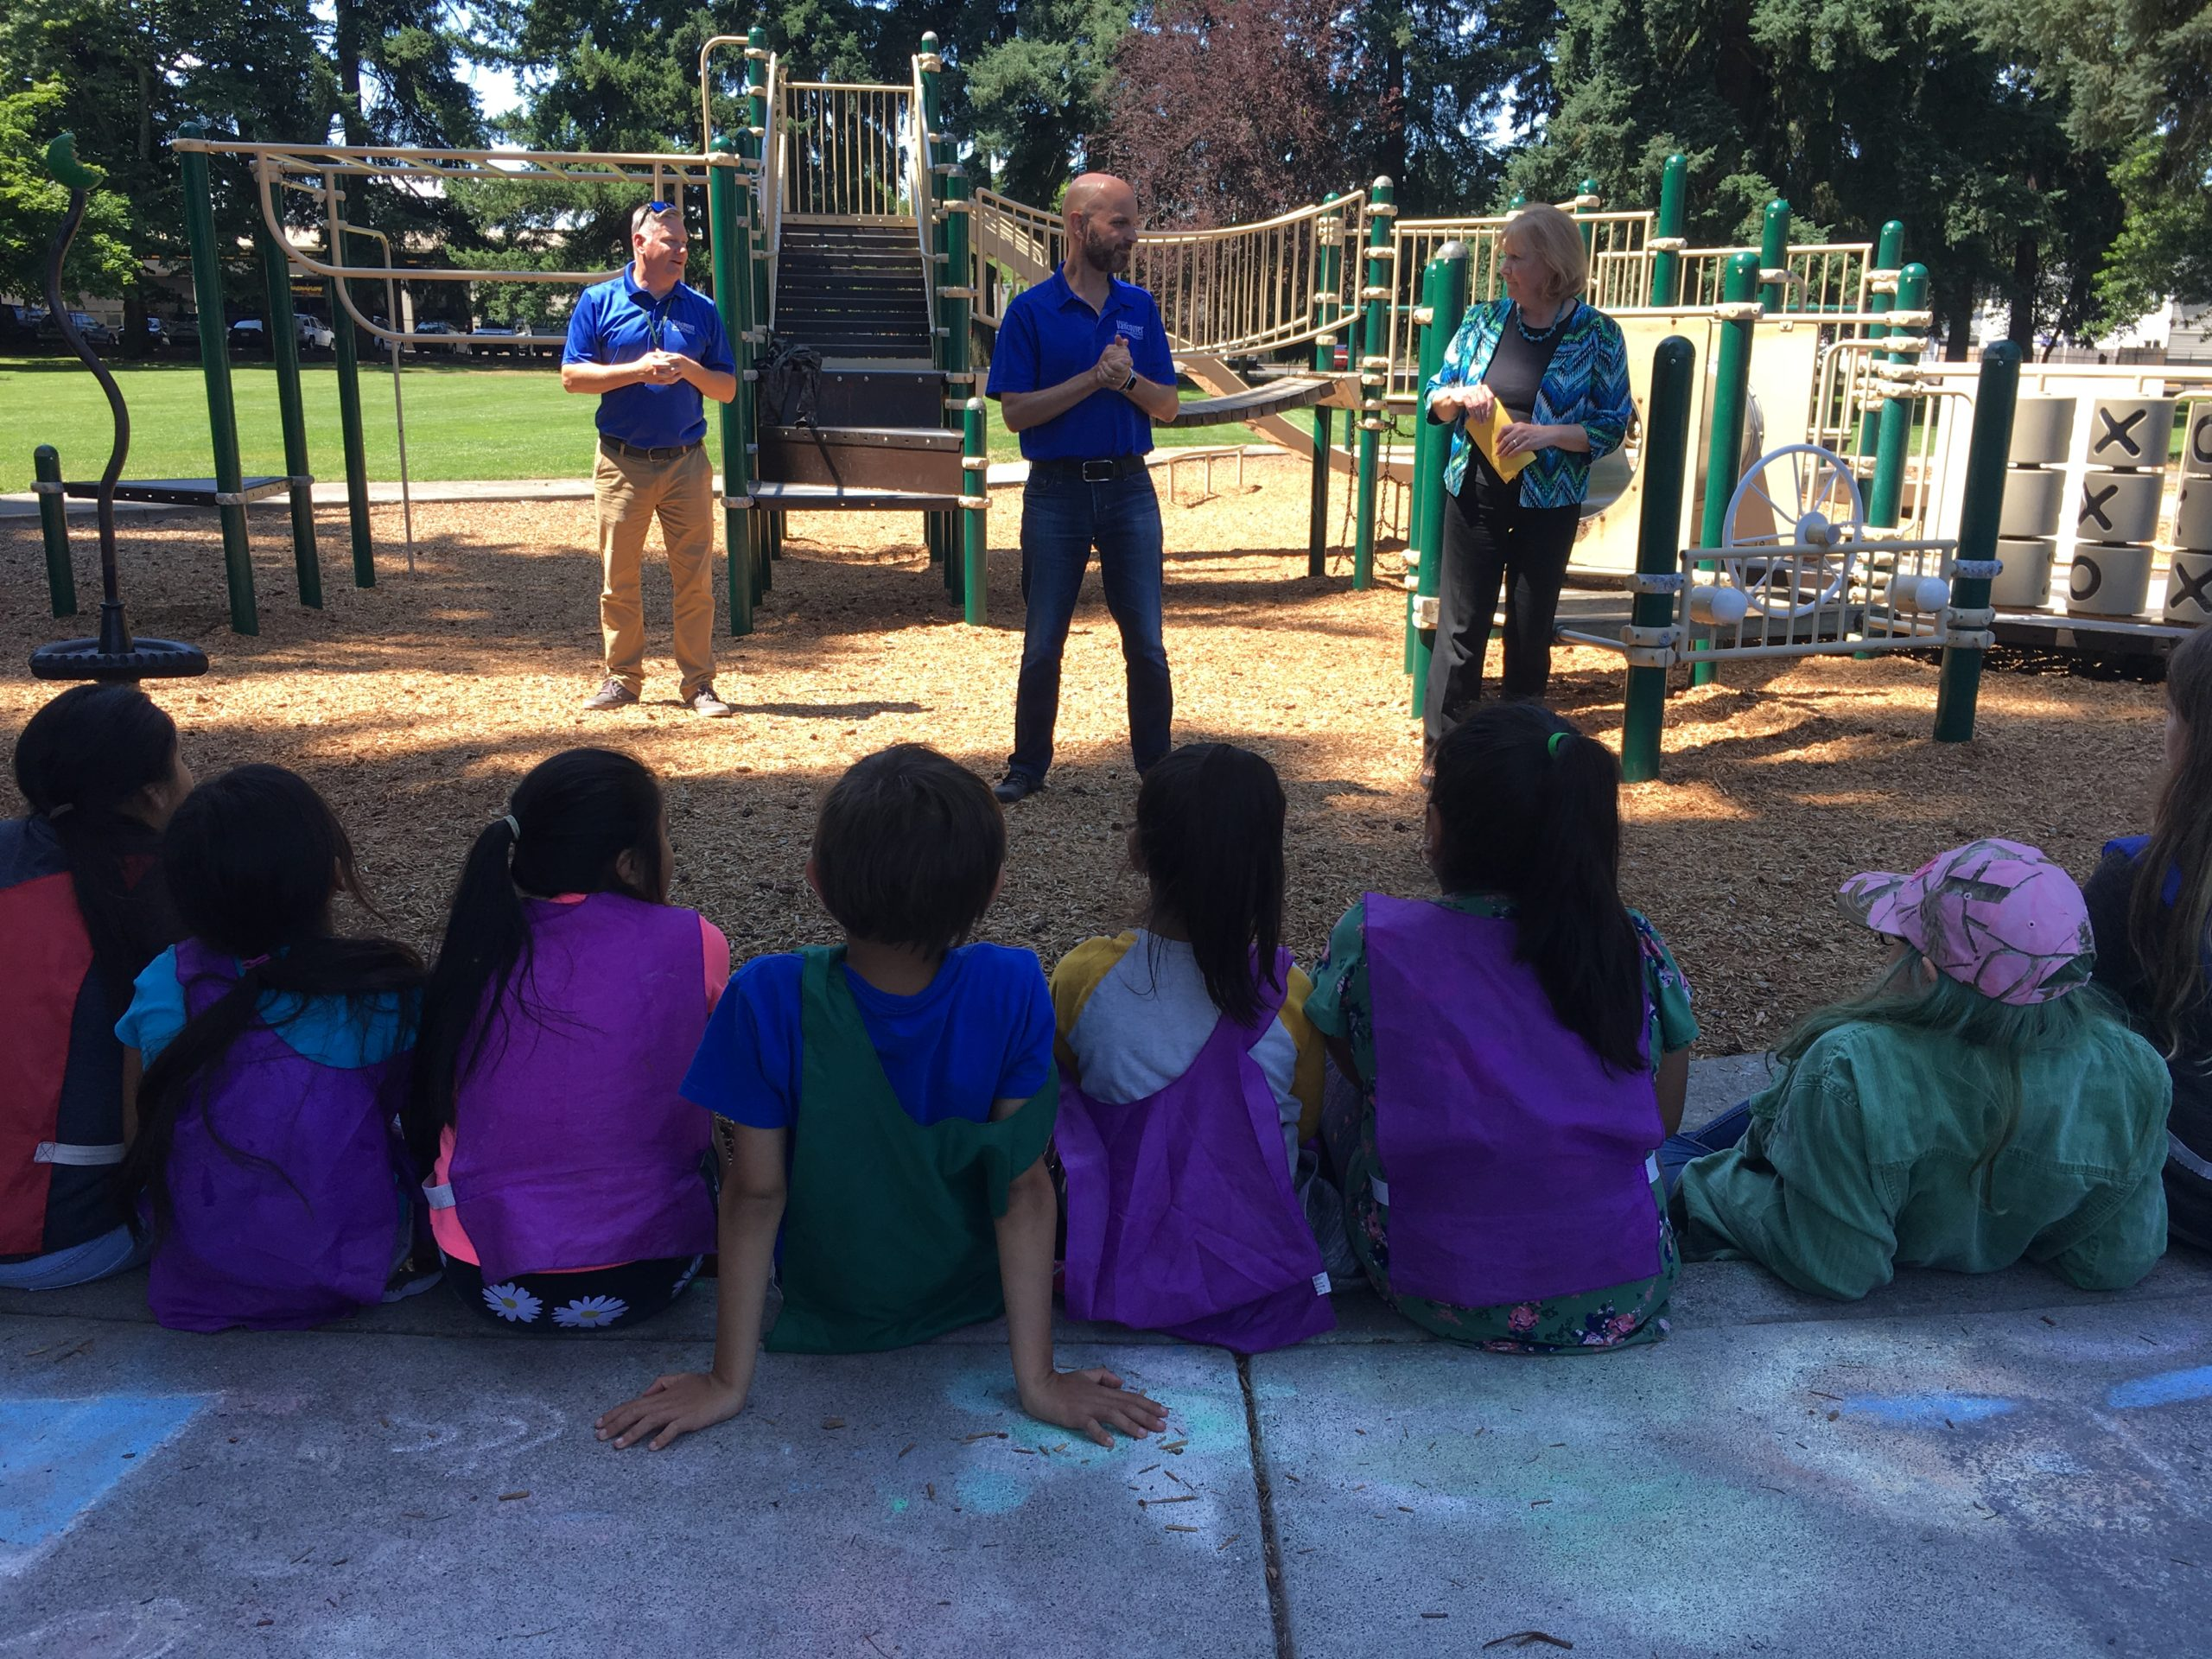 City of Vancouver Mayor Anne McEnerny-Olge and City Council member Ty Stober answer questions from kids who participate in Evergreen Park's Summer Playgrounds Program.